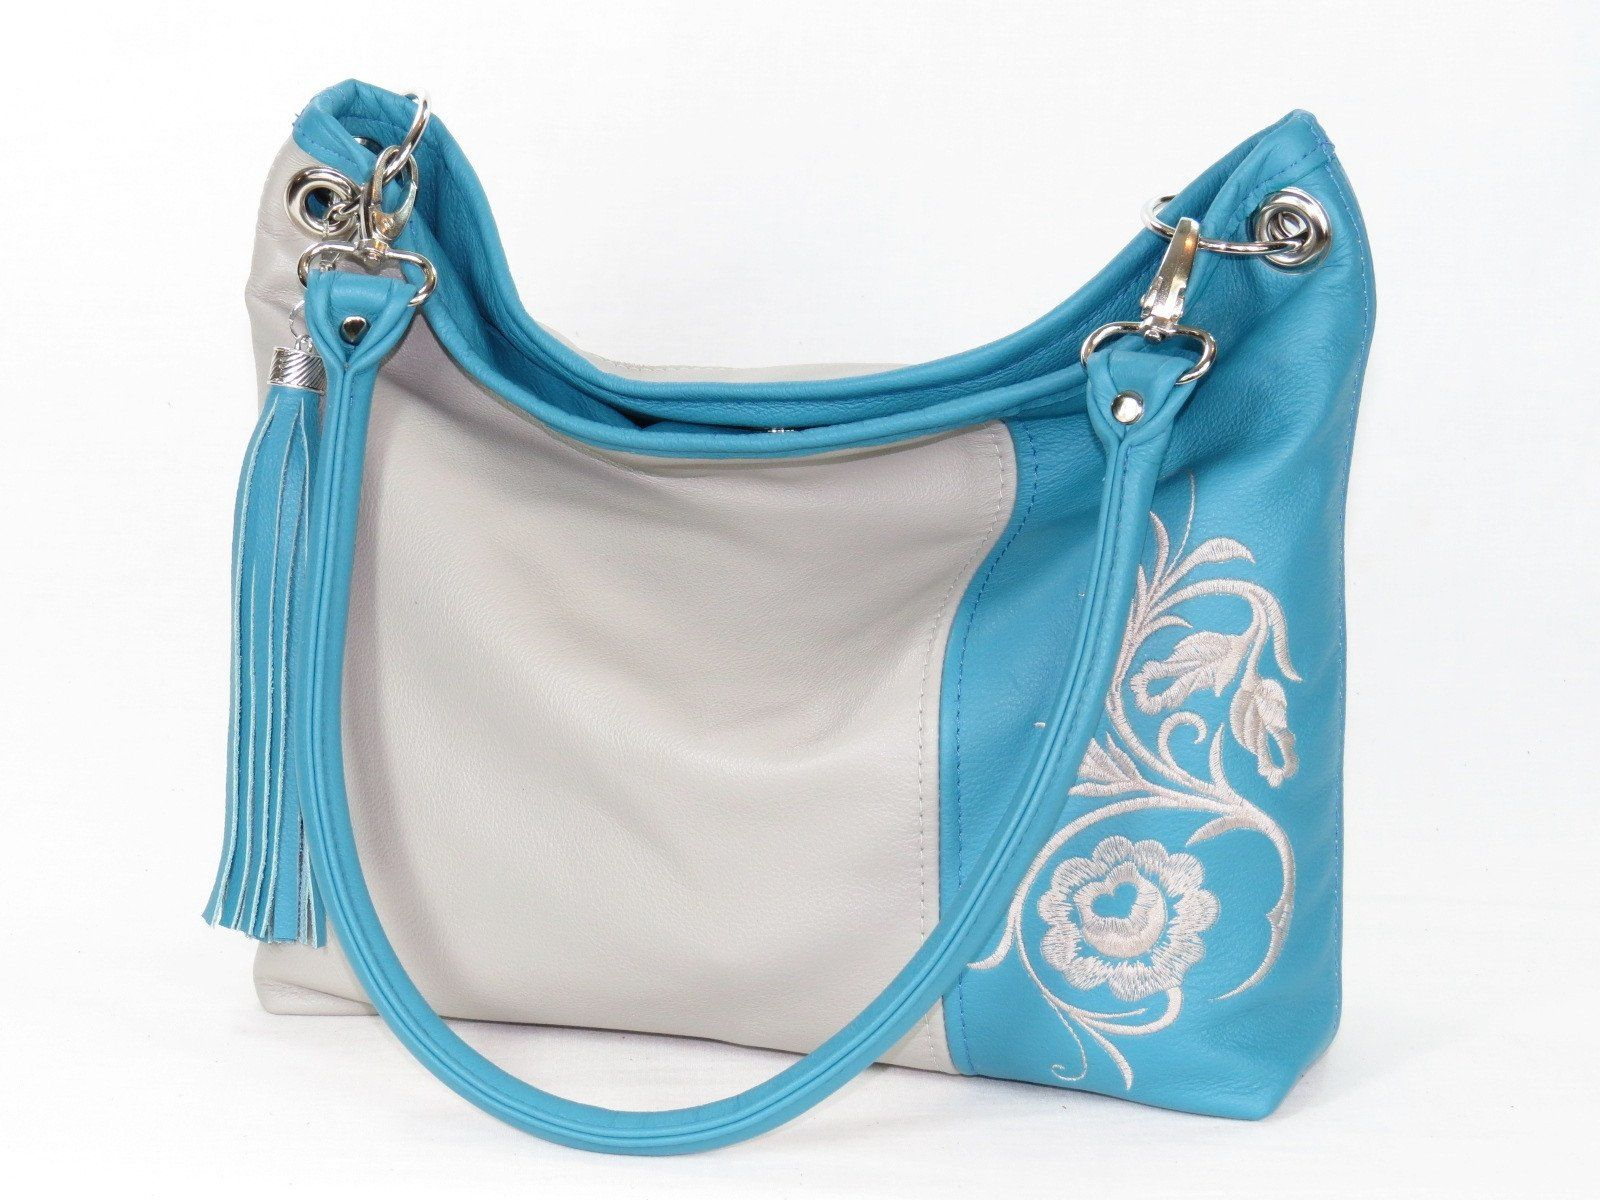 a4f69cc87a Turquoise and Gray Slouchy Hobo Leather Bag. The Turquoise and Gray of the  Slouchy Collection features lovely turquoise and gray genuine leather hides  of ...